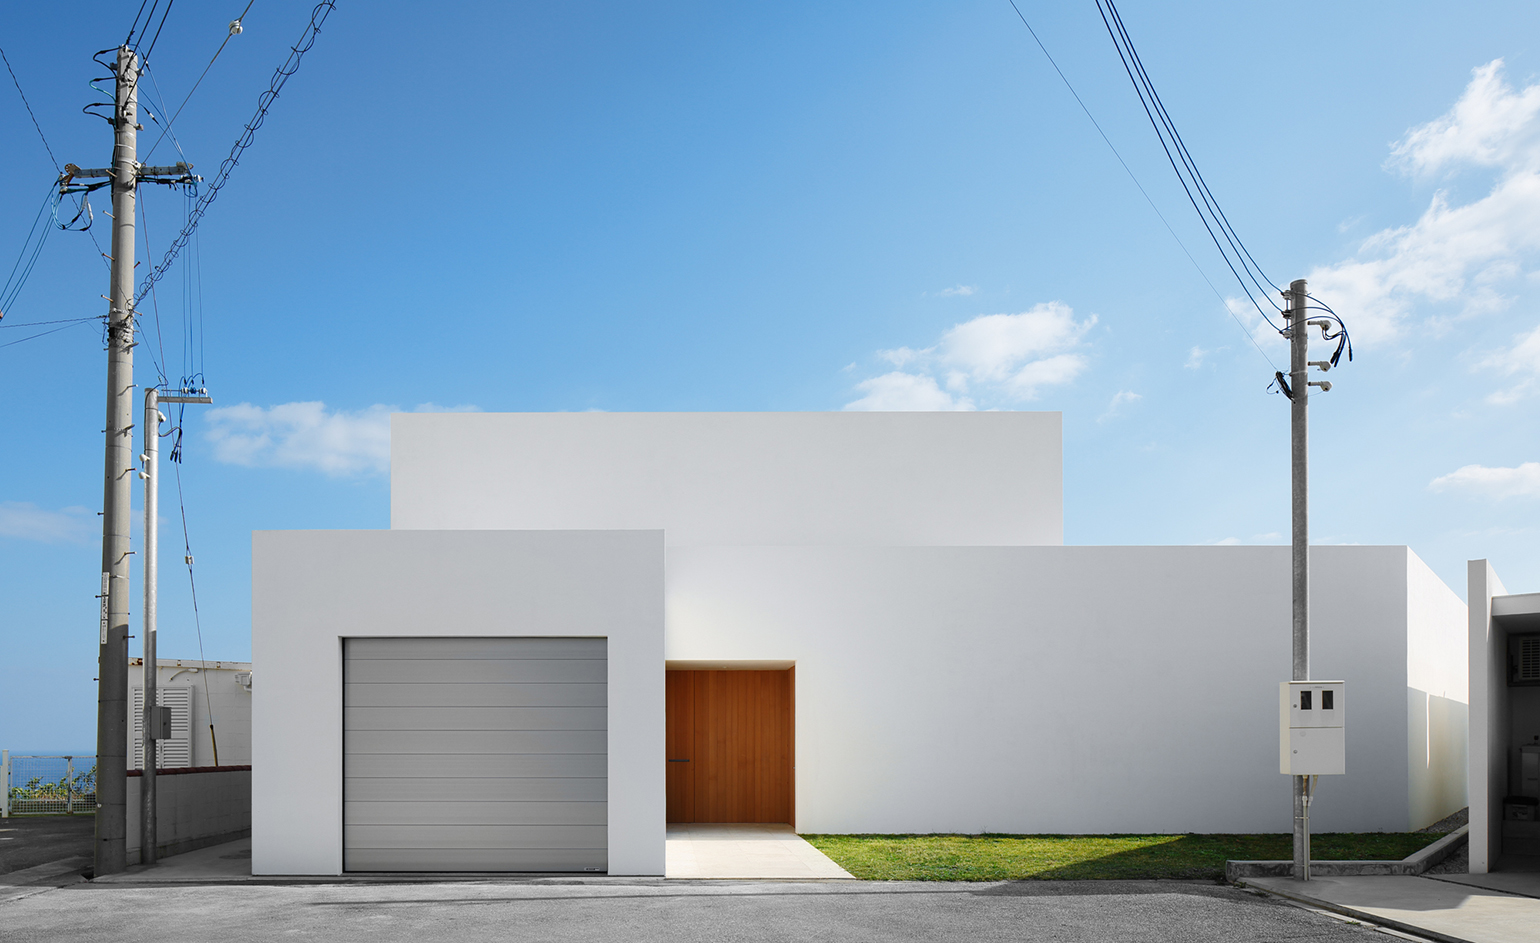 John pawson unveils minimalist japanese home in okinawa for Minimalist house design uk